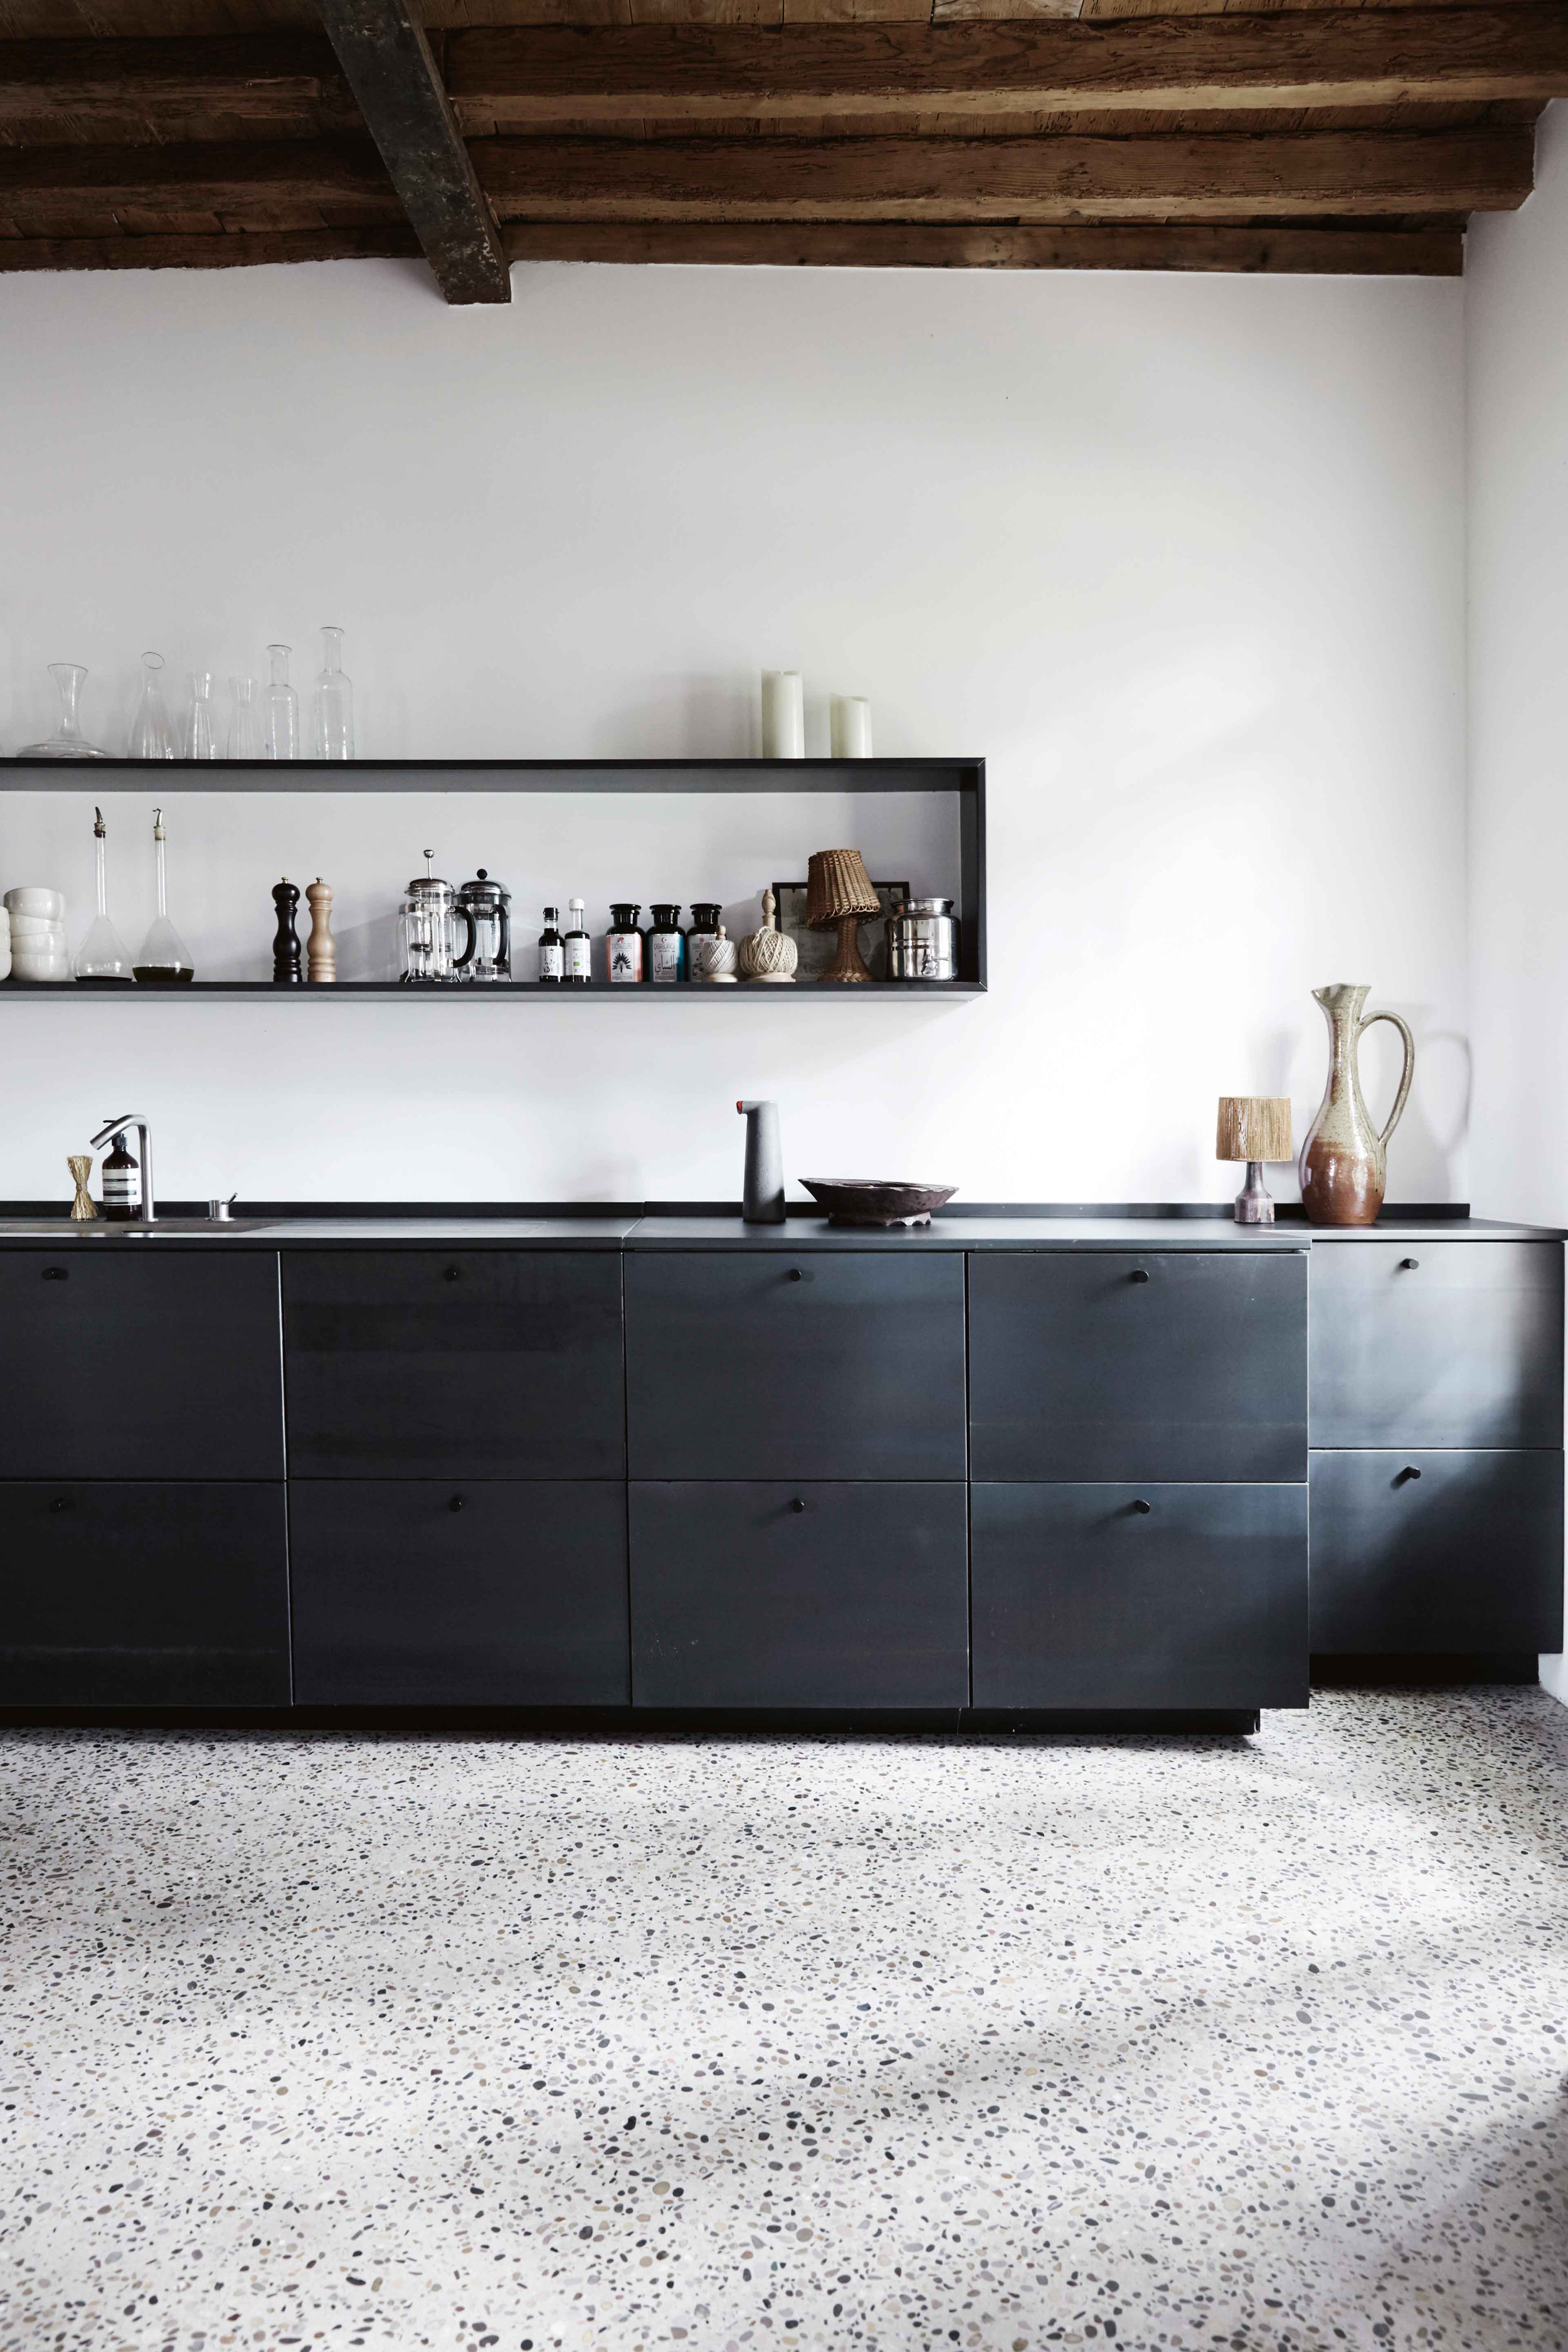 Kitchen Design Trends In 2018 The Real Kitchen Design Trends In 2019 The Most Chic